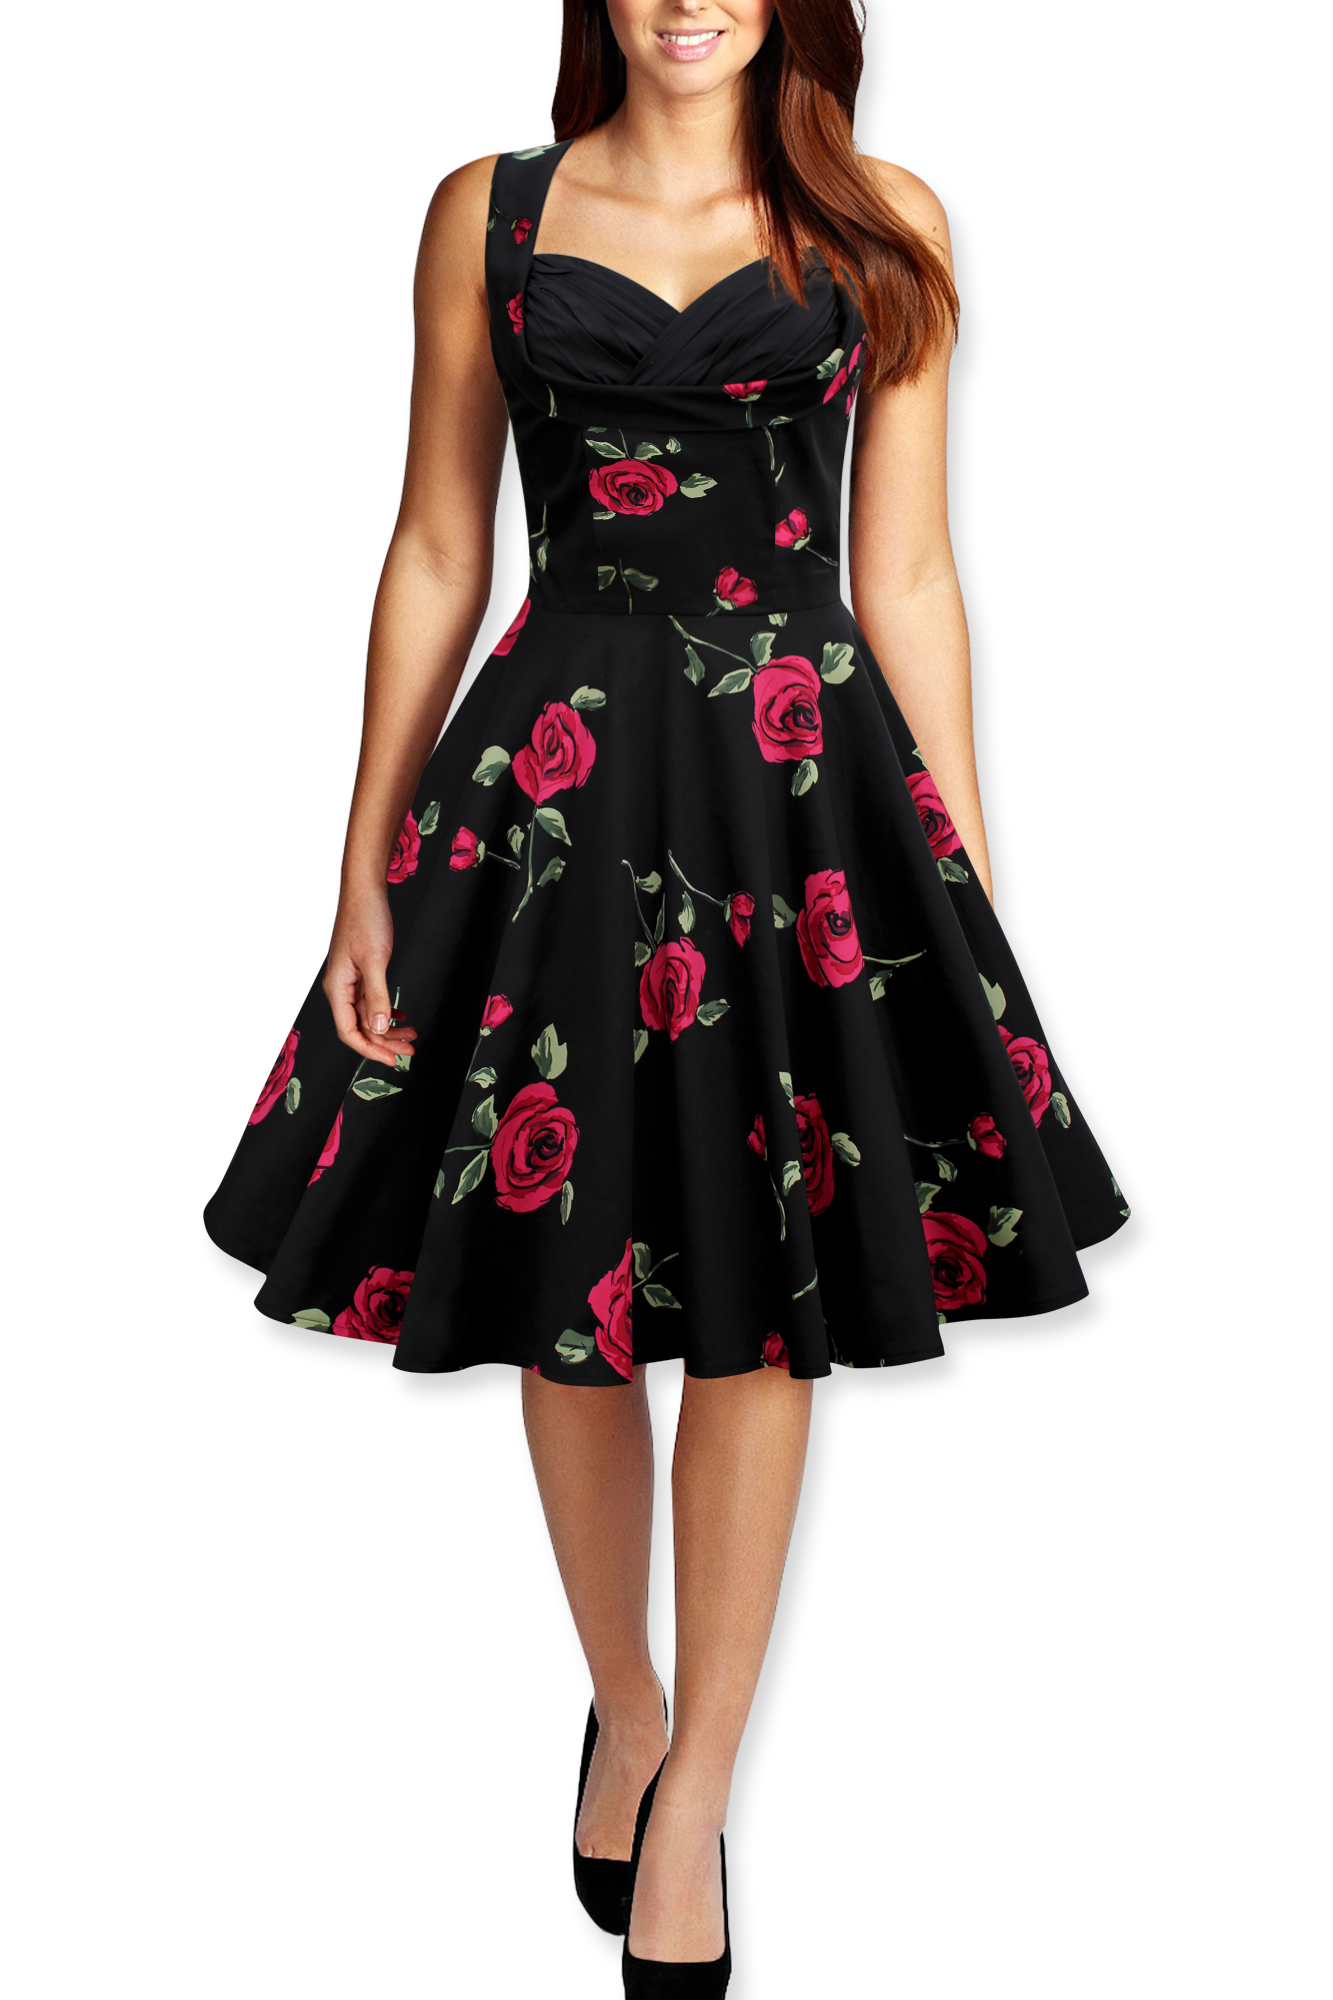 CLASSIC-VINTAGE-STYLE-1950s-FULL-CIRCLE-ROCKABILLY-SWING-DRESS-SIZE-8-26